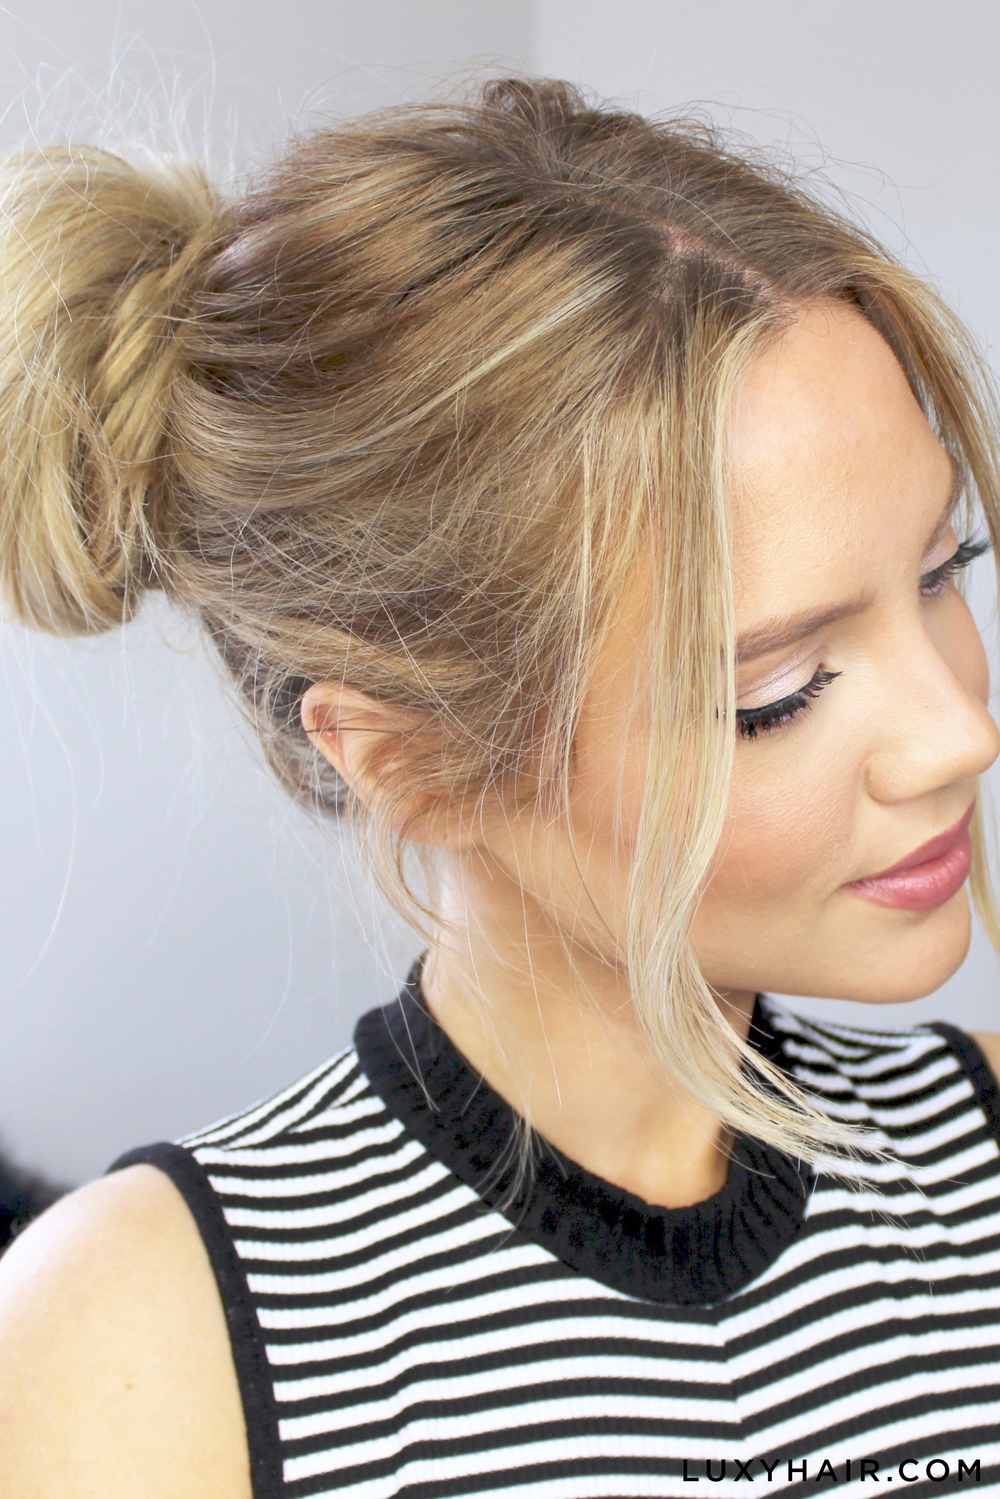 Communication on this topic: How To Get A MessyChignon, how-to-get-a-messychignon/